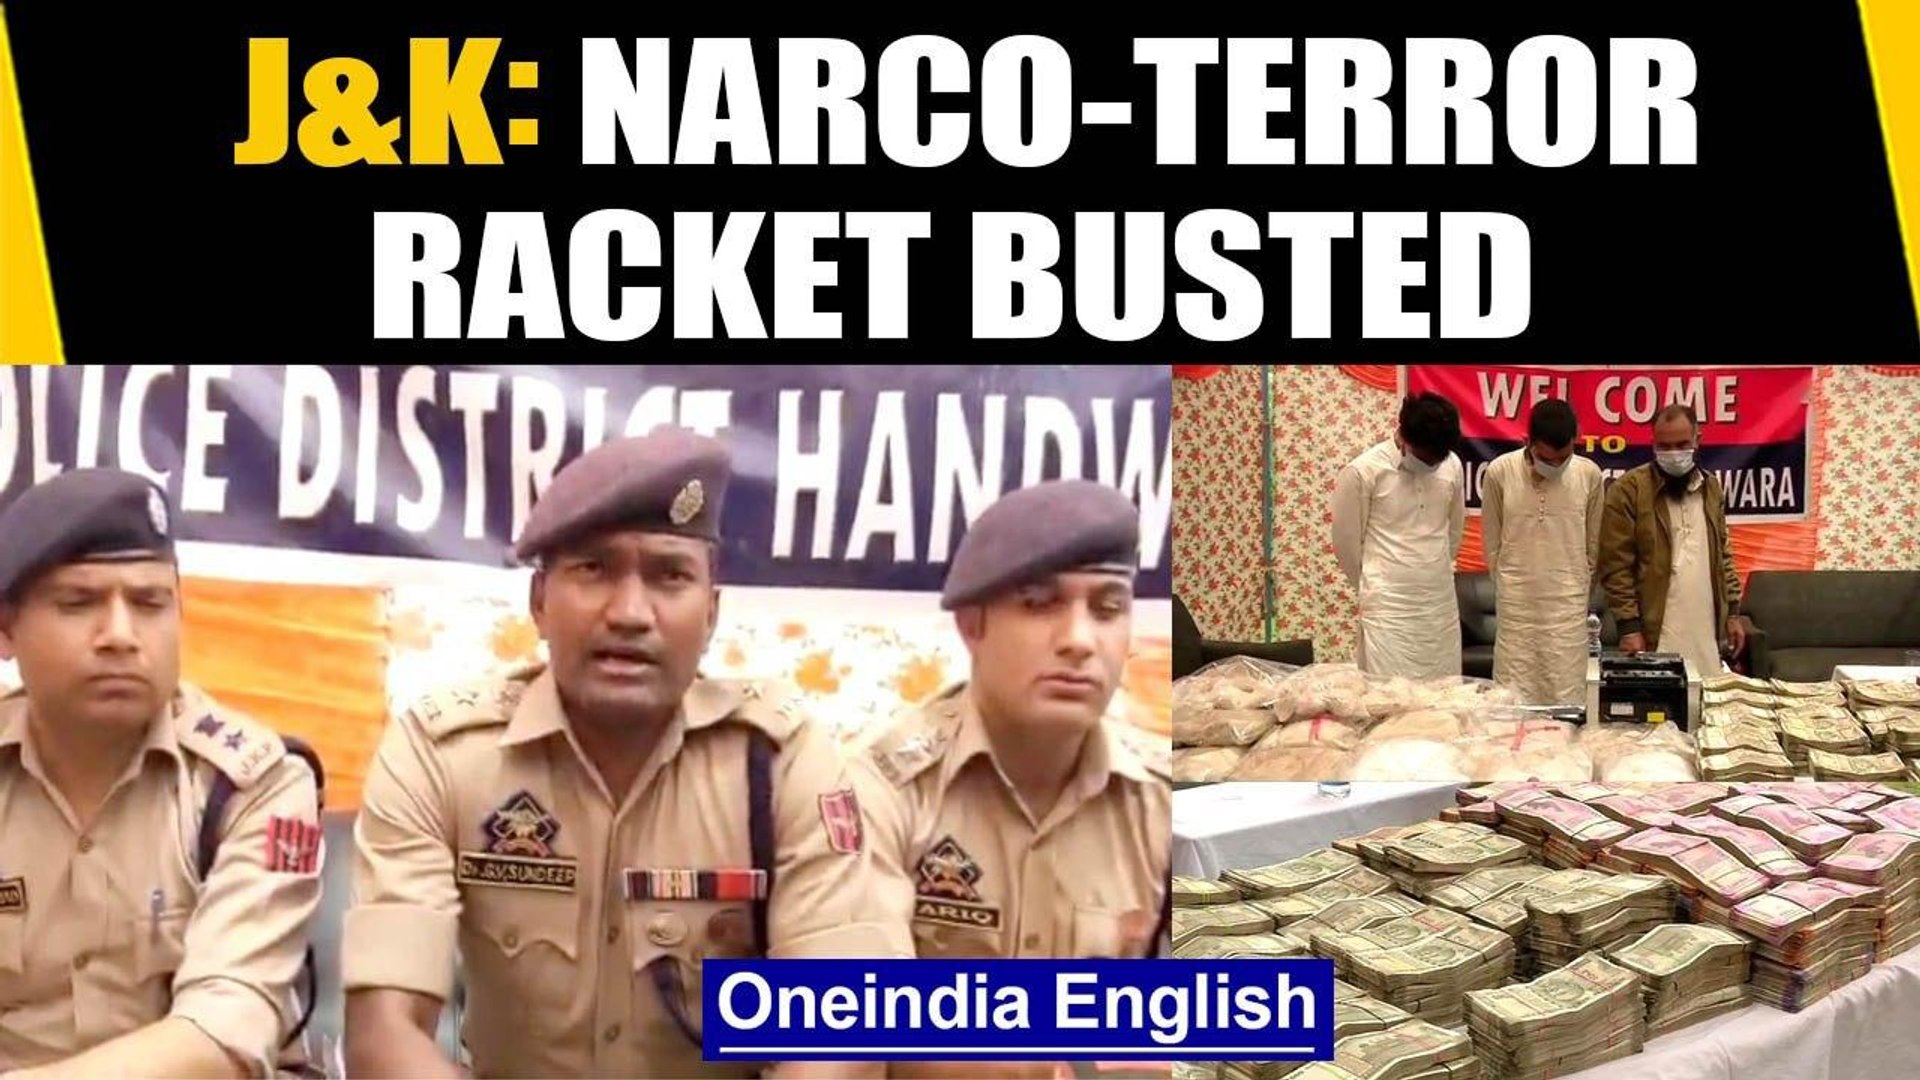 Kashmir narco-terror plot busted, 21 kg drugs recovered: Watch| Oneindia News